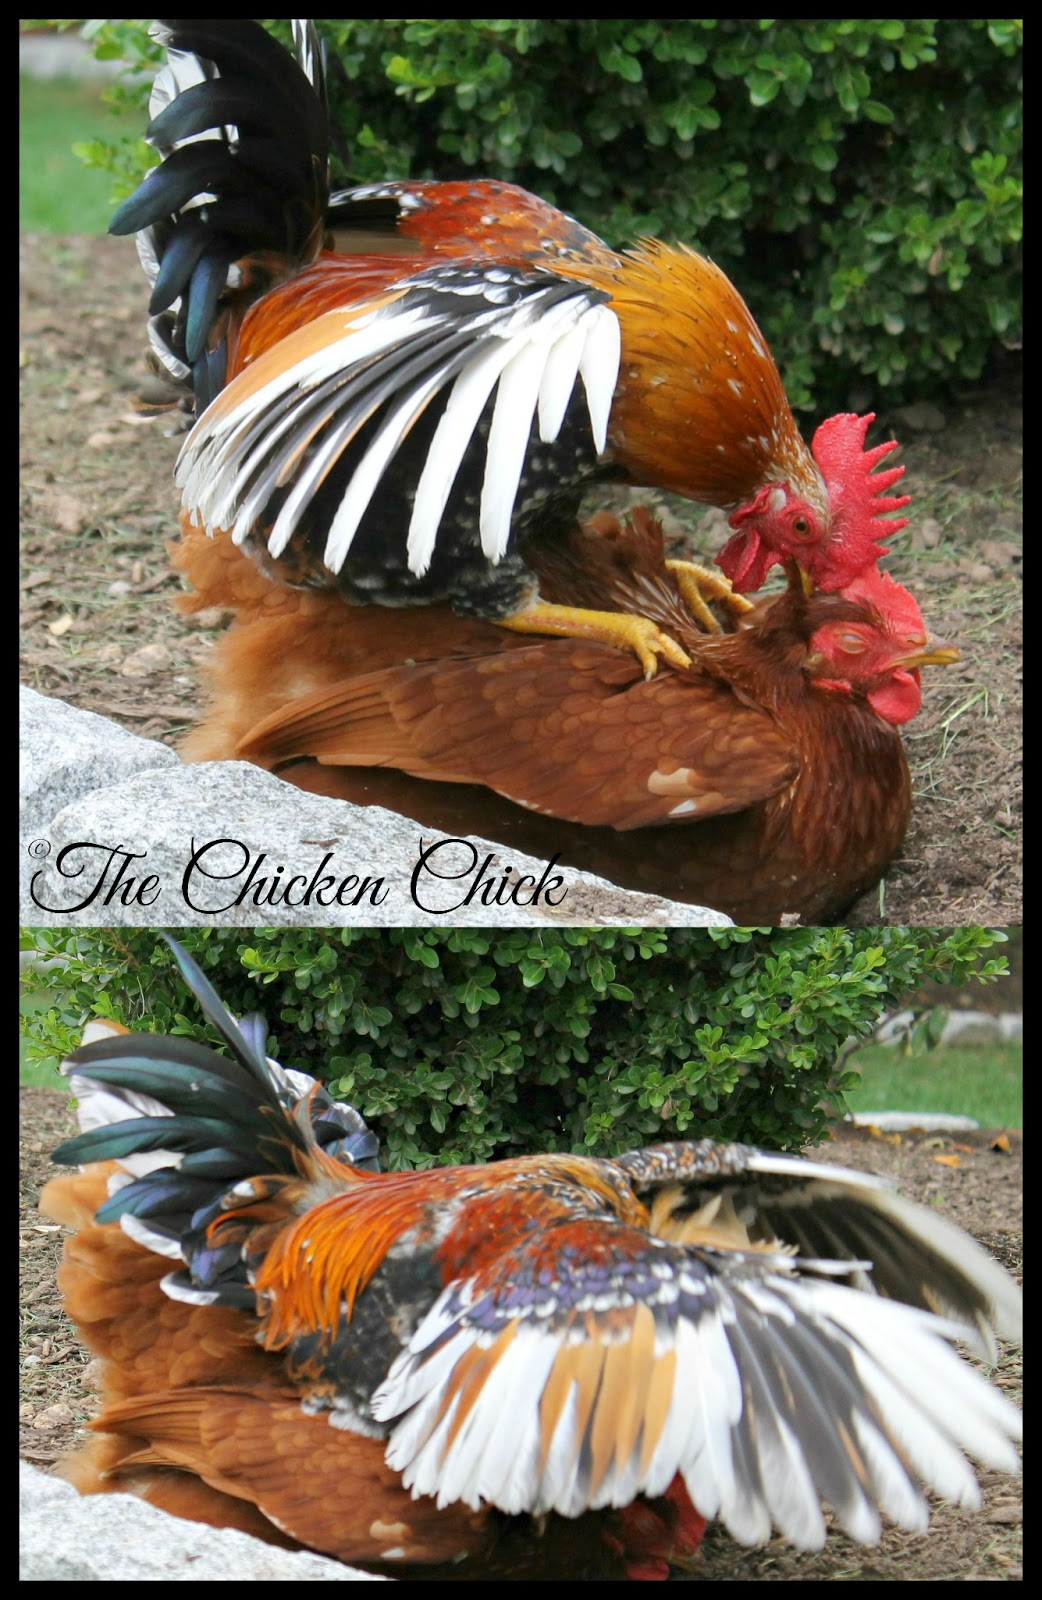 Bantams roosters (small breeds) can successfully mate with large fowl hens.